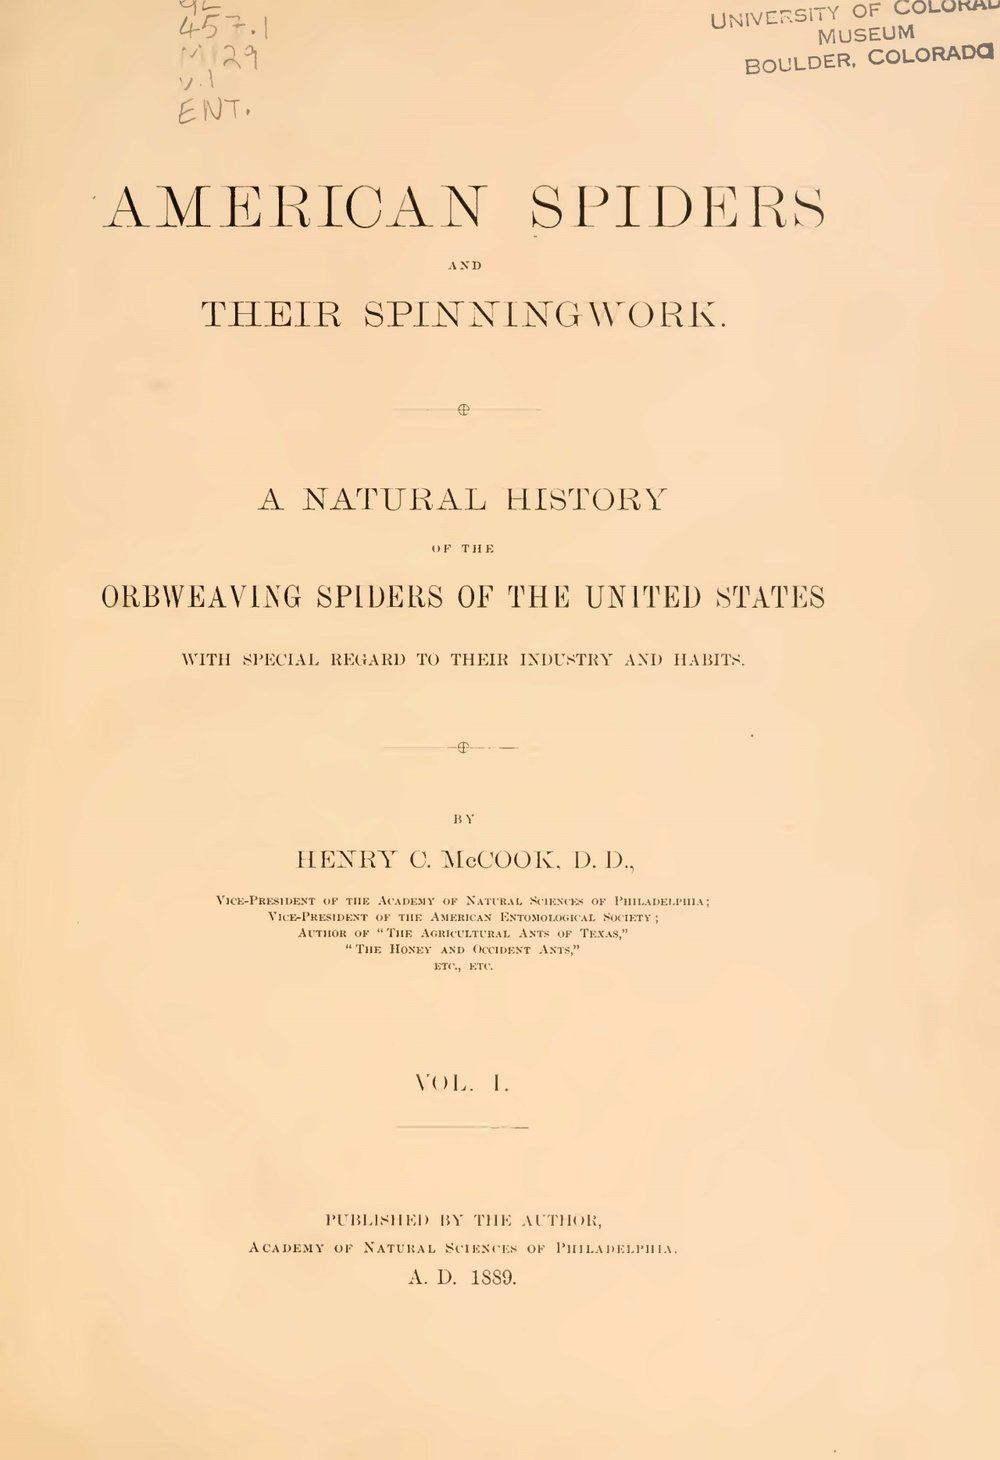 McCook, Henry Christopher, American Spiders and Their Spinningwork Title Page.jpg